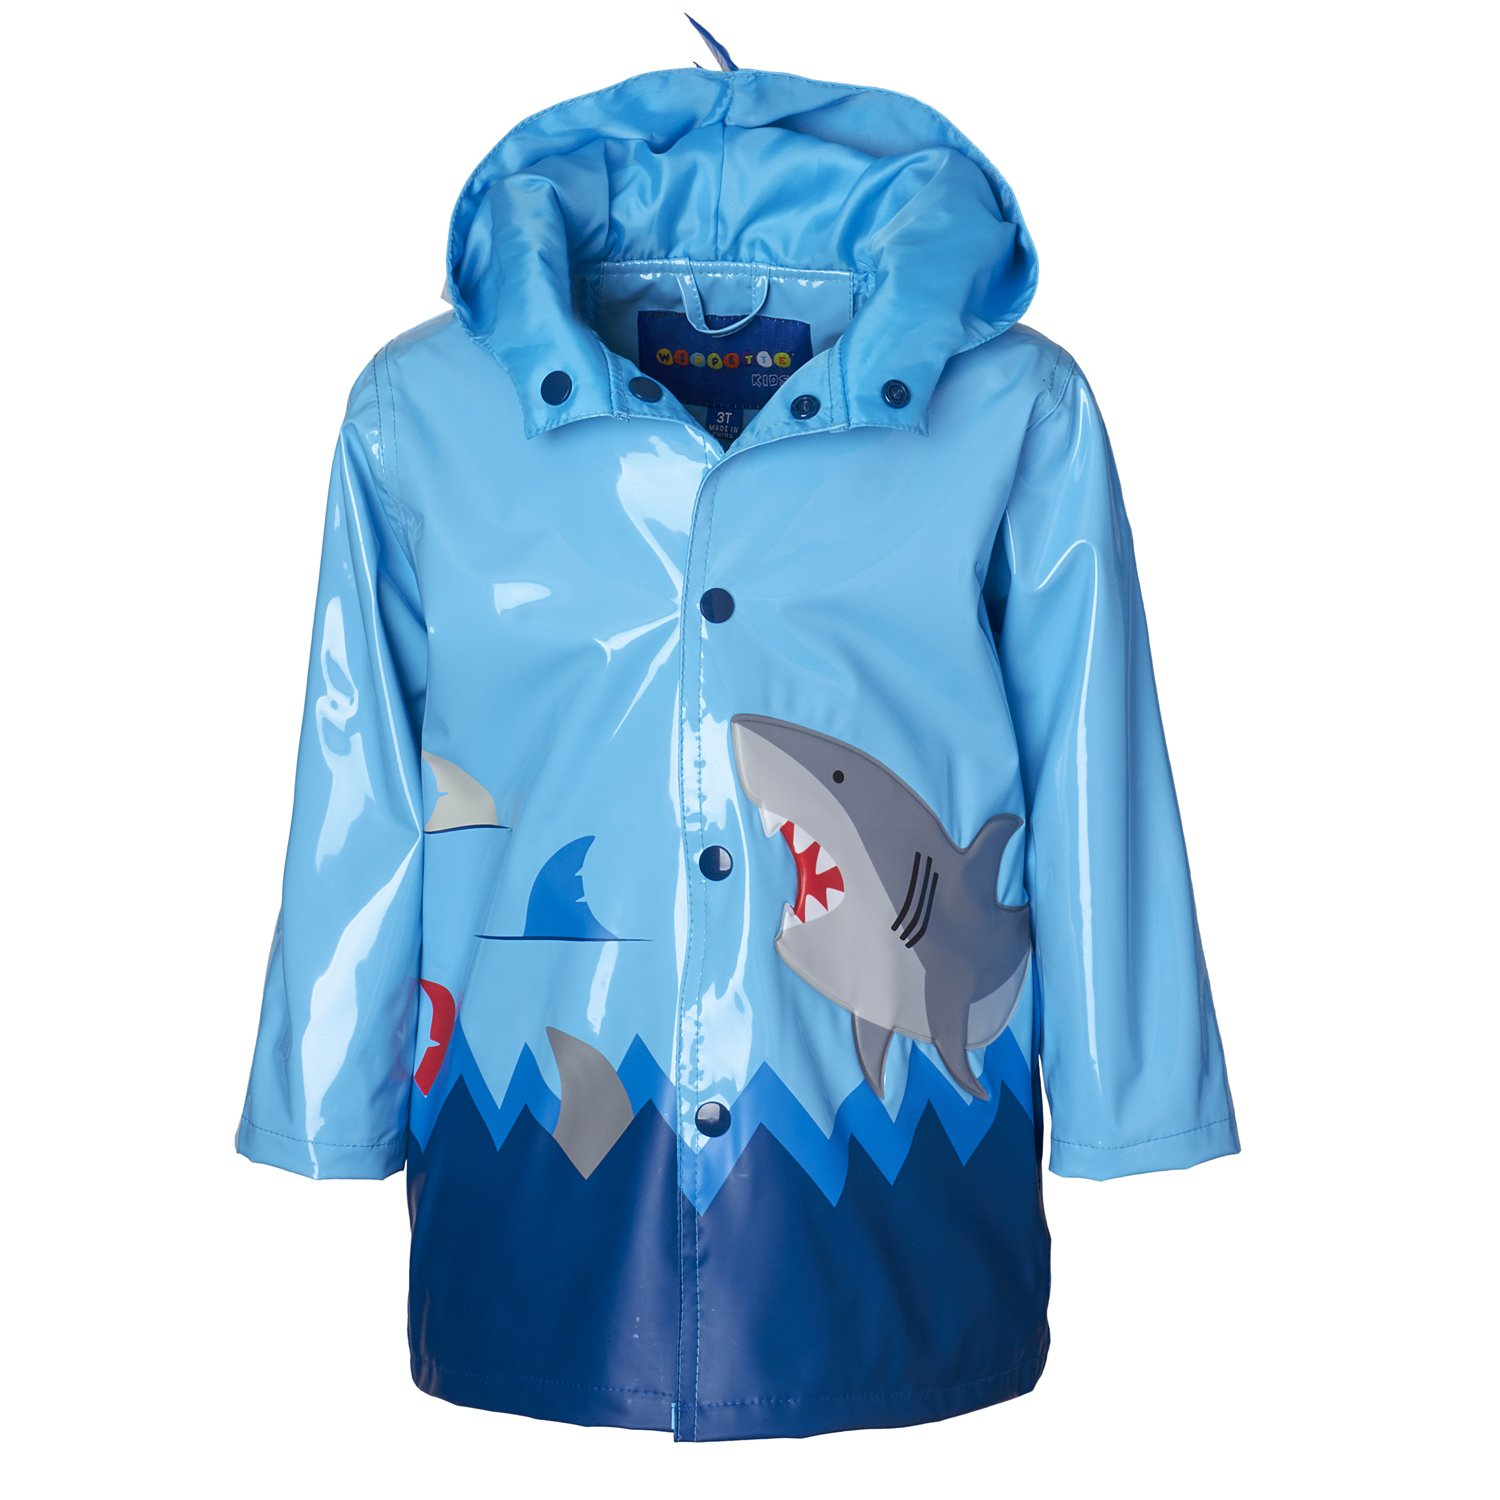 Wippette Boys & Toddlers Rain Jacket With Shark Print, Shark - Shiny Blue, 6 Boys